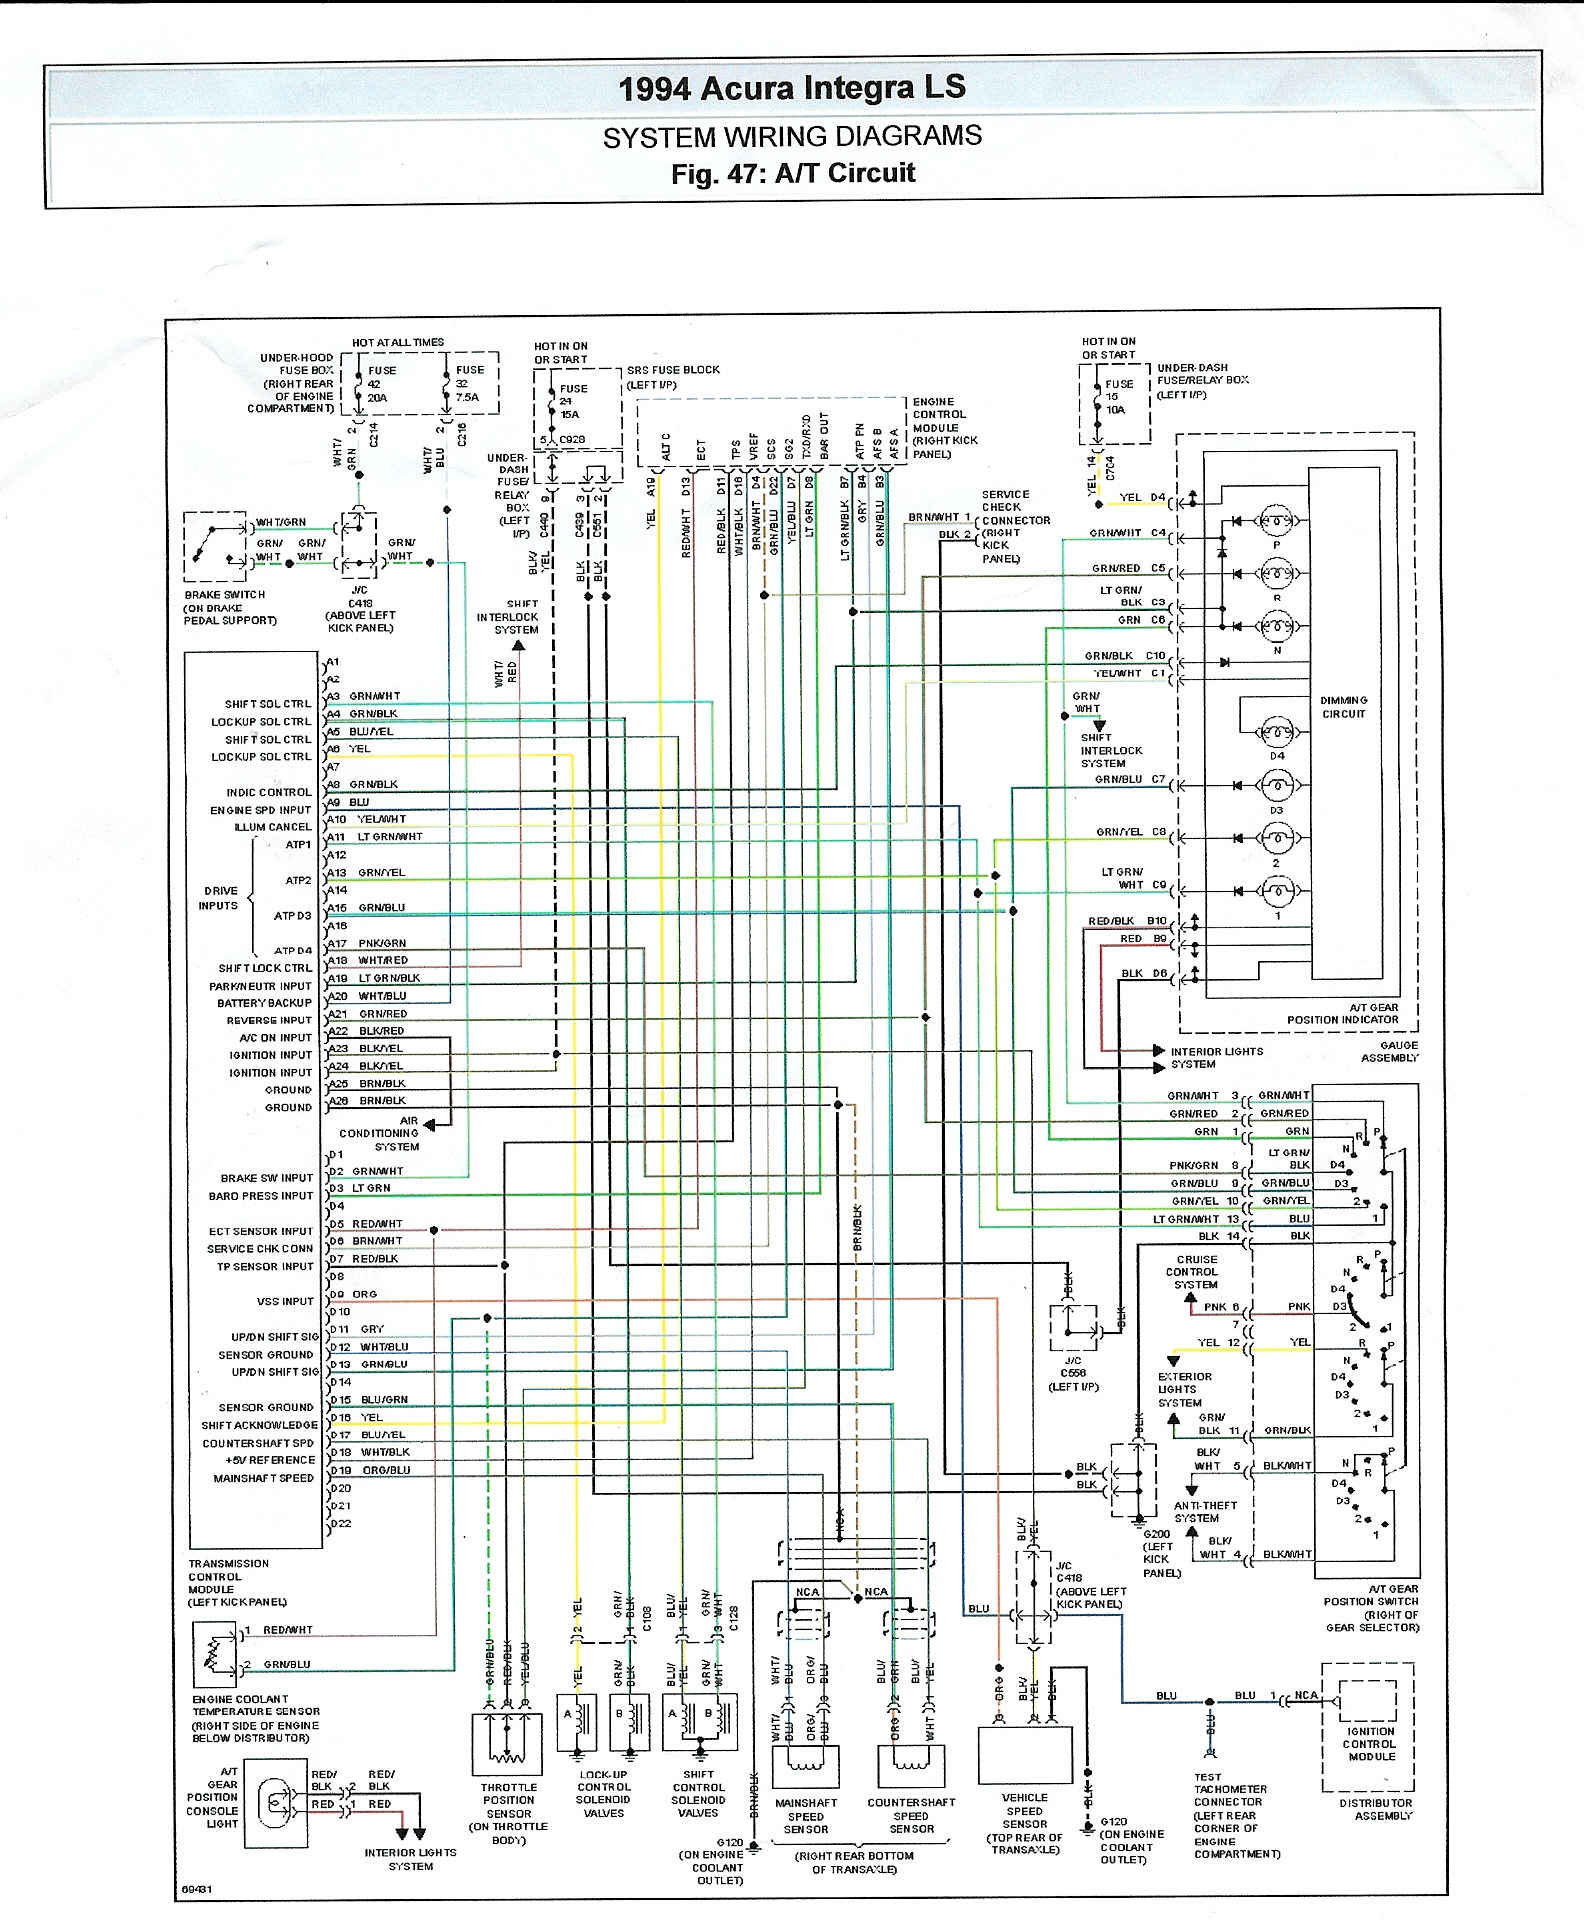 Taskmaster 5100 Series Wiring Diagram Libraries New Outlet Free Download Diagrams Pictures Tpi G1g5103n Librarytaskmaster Heater